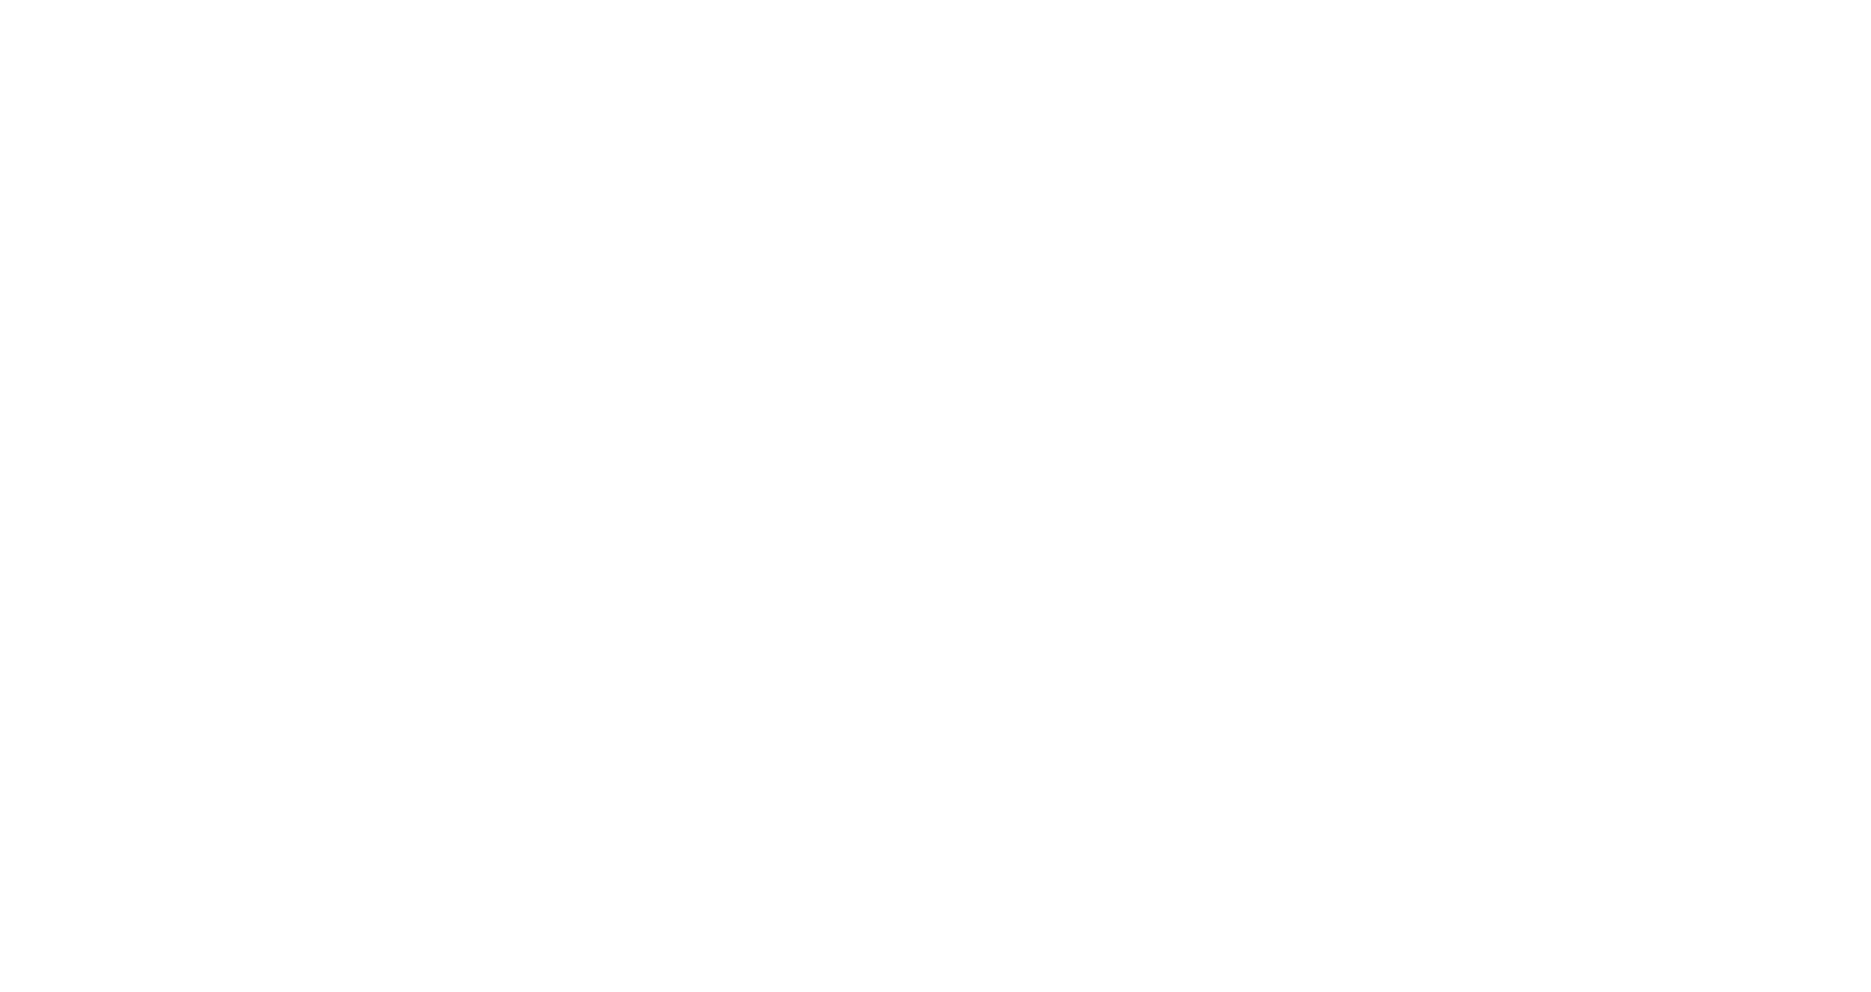 Smart Design & Illustration AB